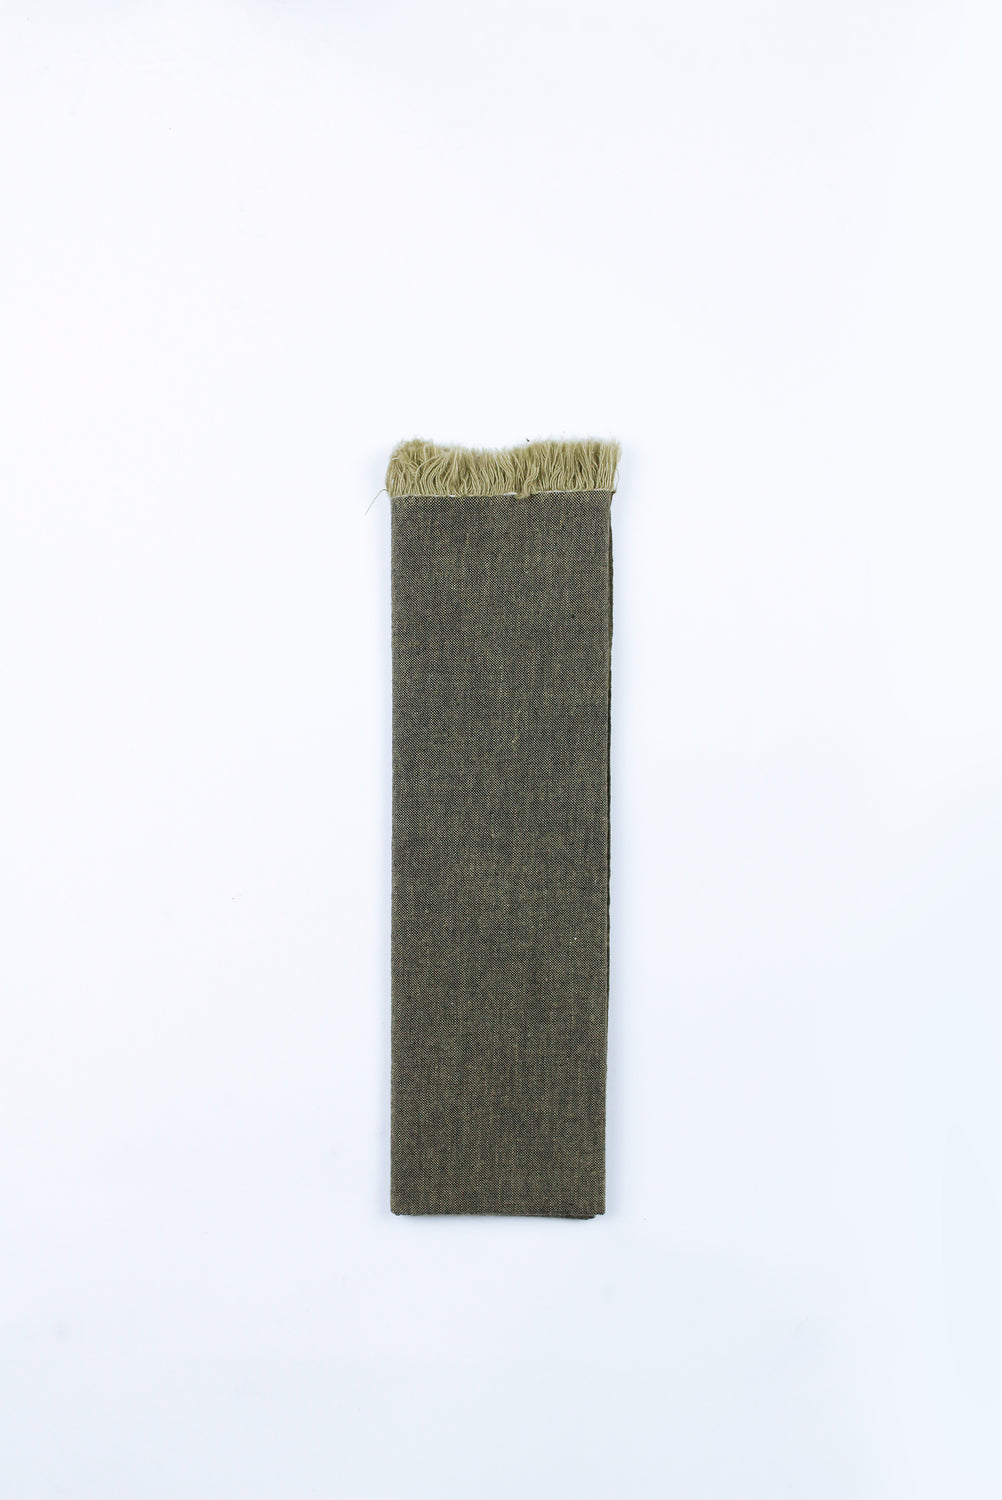 Cotton Tenugui with Fringe, Solid Green